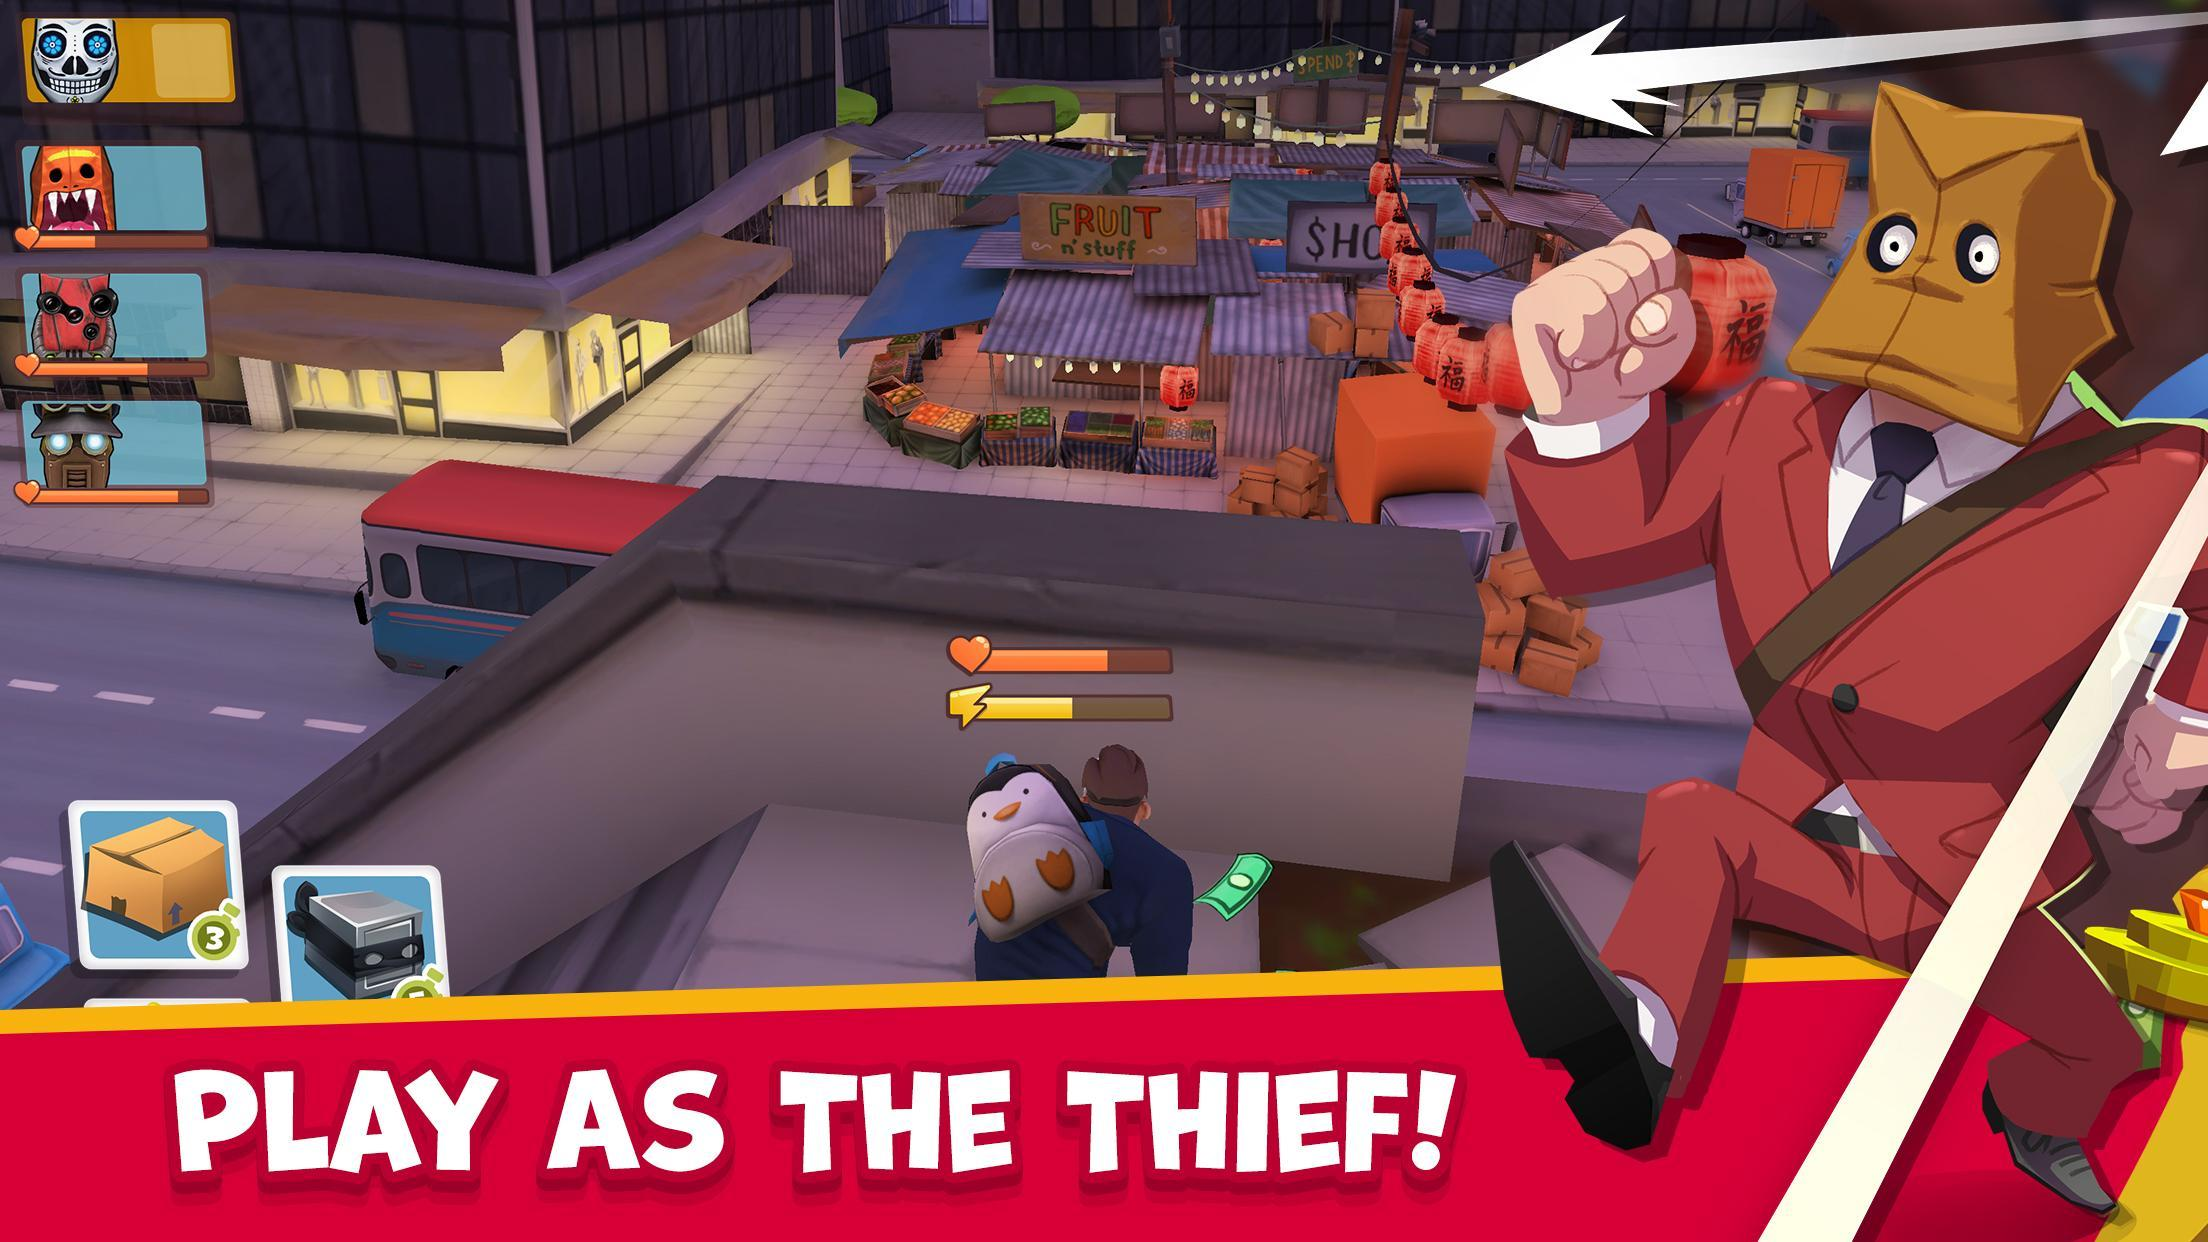 Snipers vs Thieves 2.12.38424 Screenshot 7